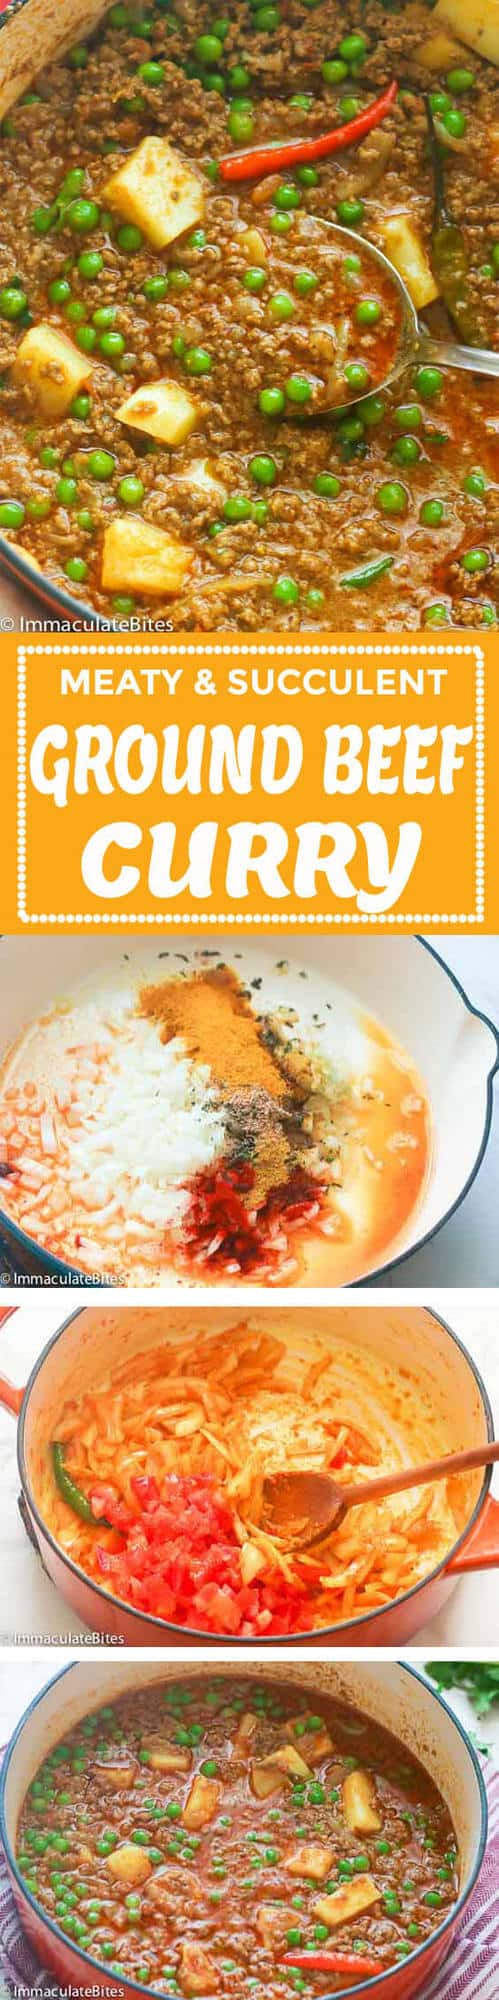 Minced Curry